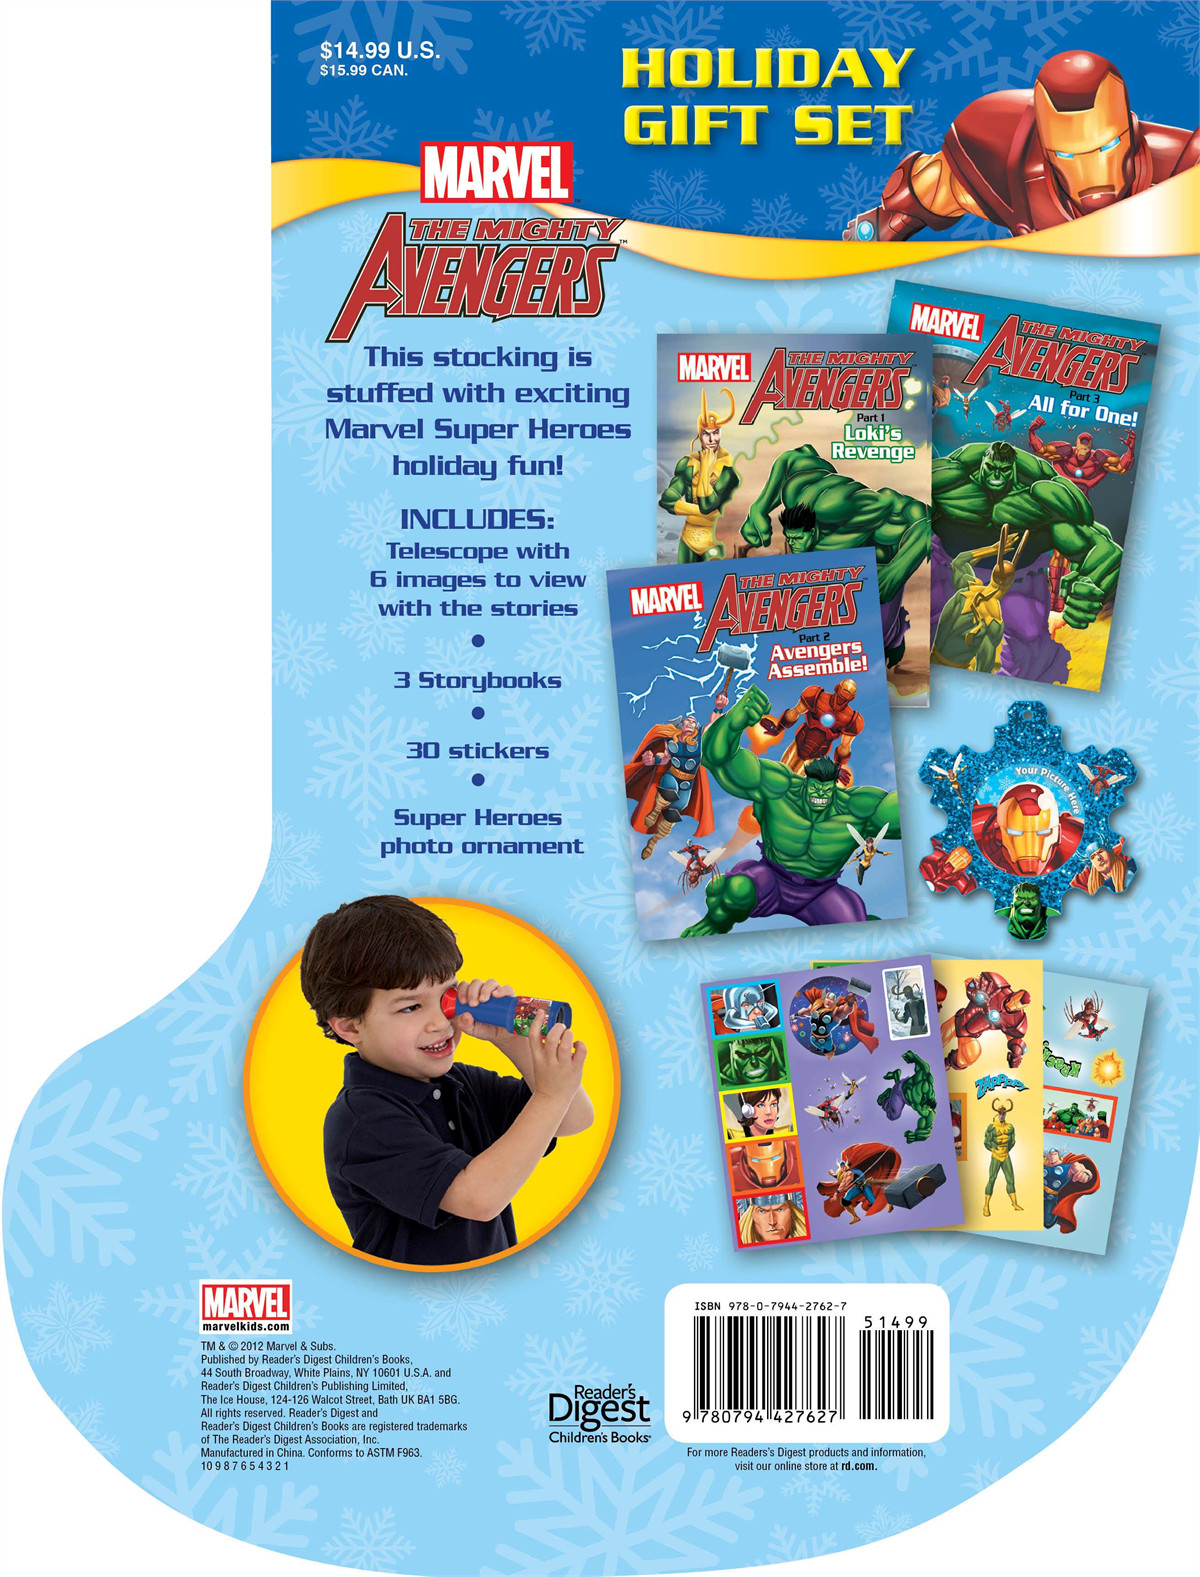 The-mighty-avengers-holiday-gift-set-9780794427627.in01